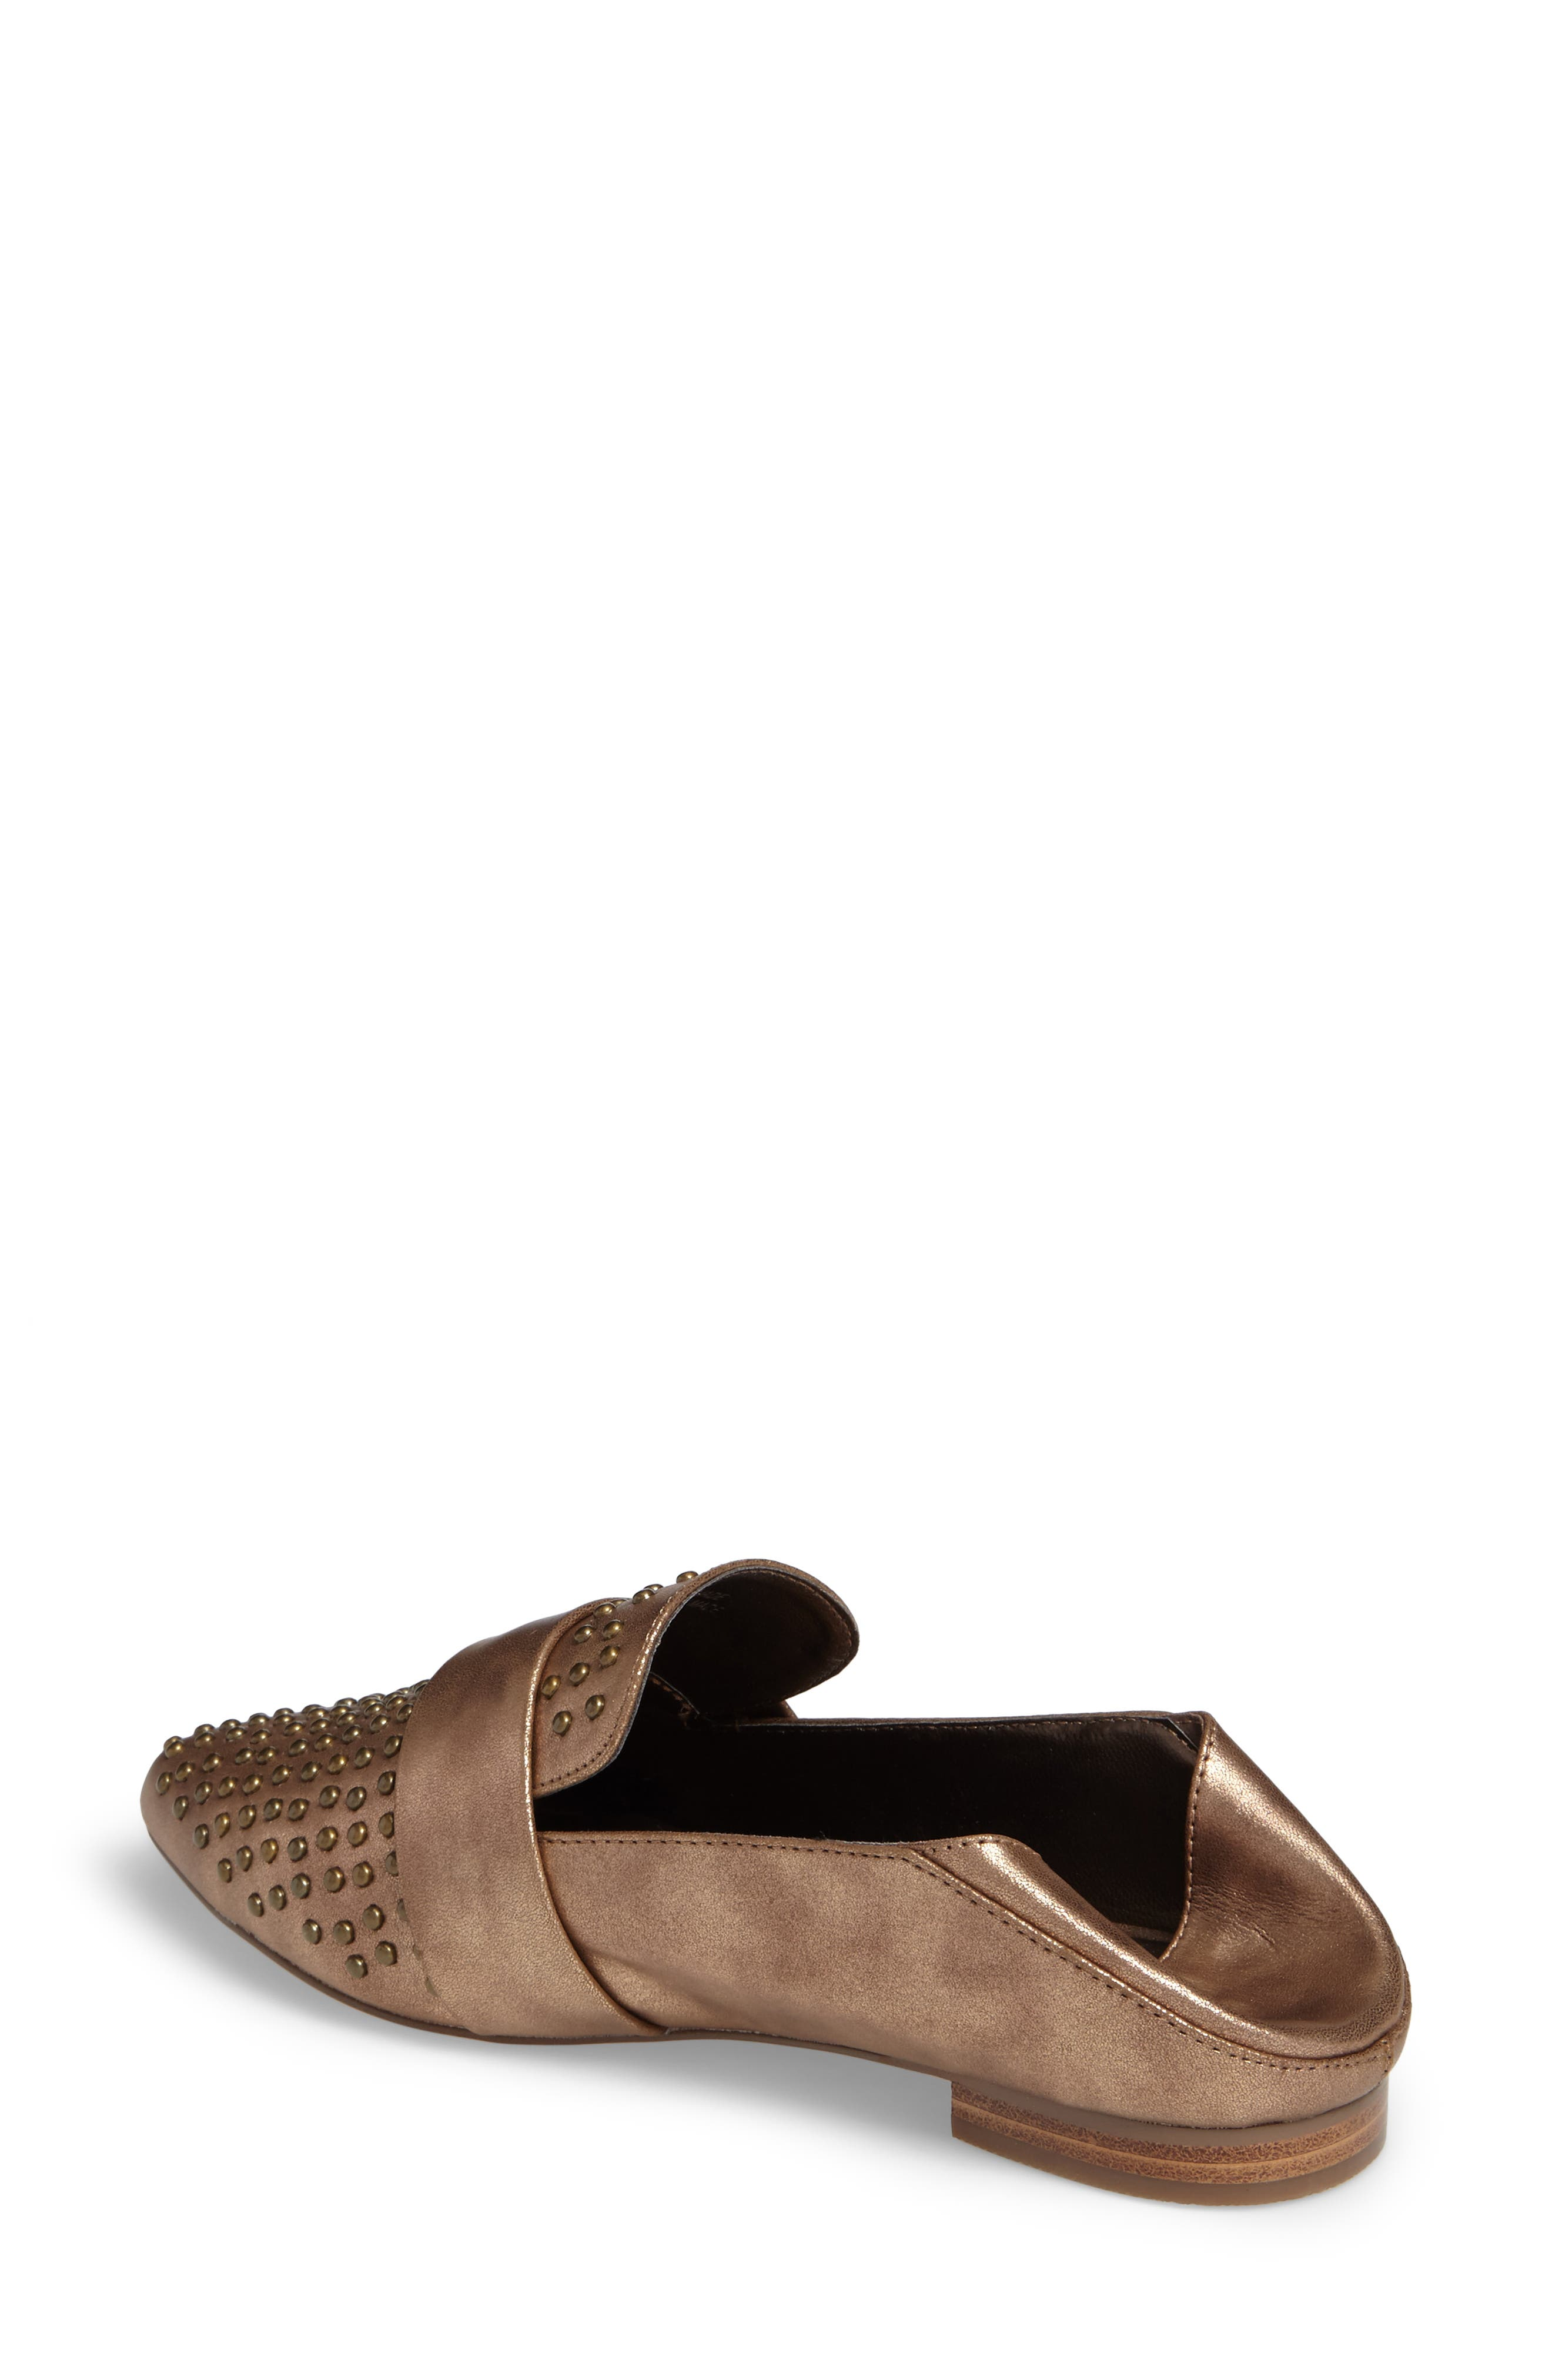 Alternate Image 3  - Coconuts by Matisse Felix Convertible Loafer (Women)